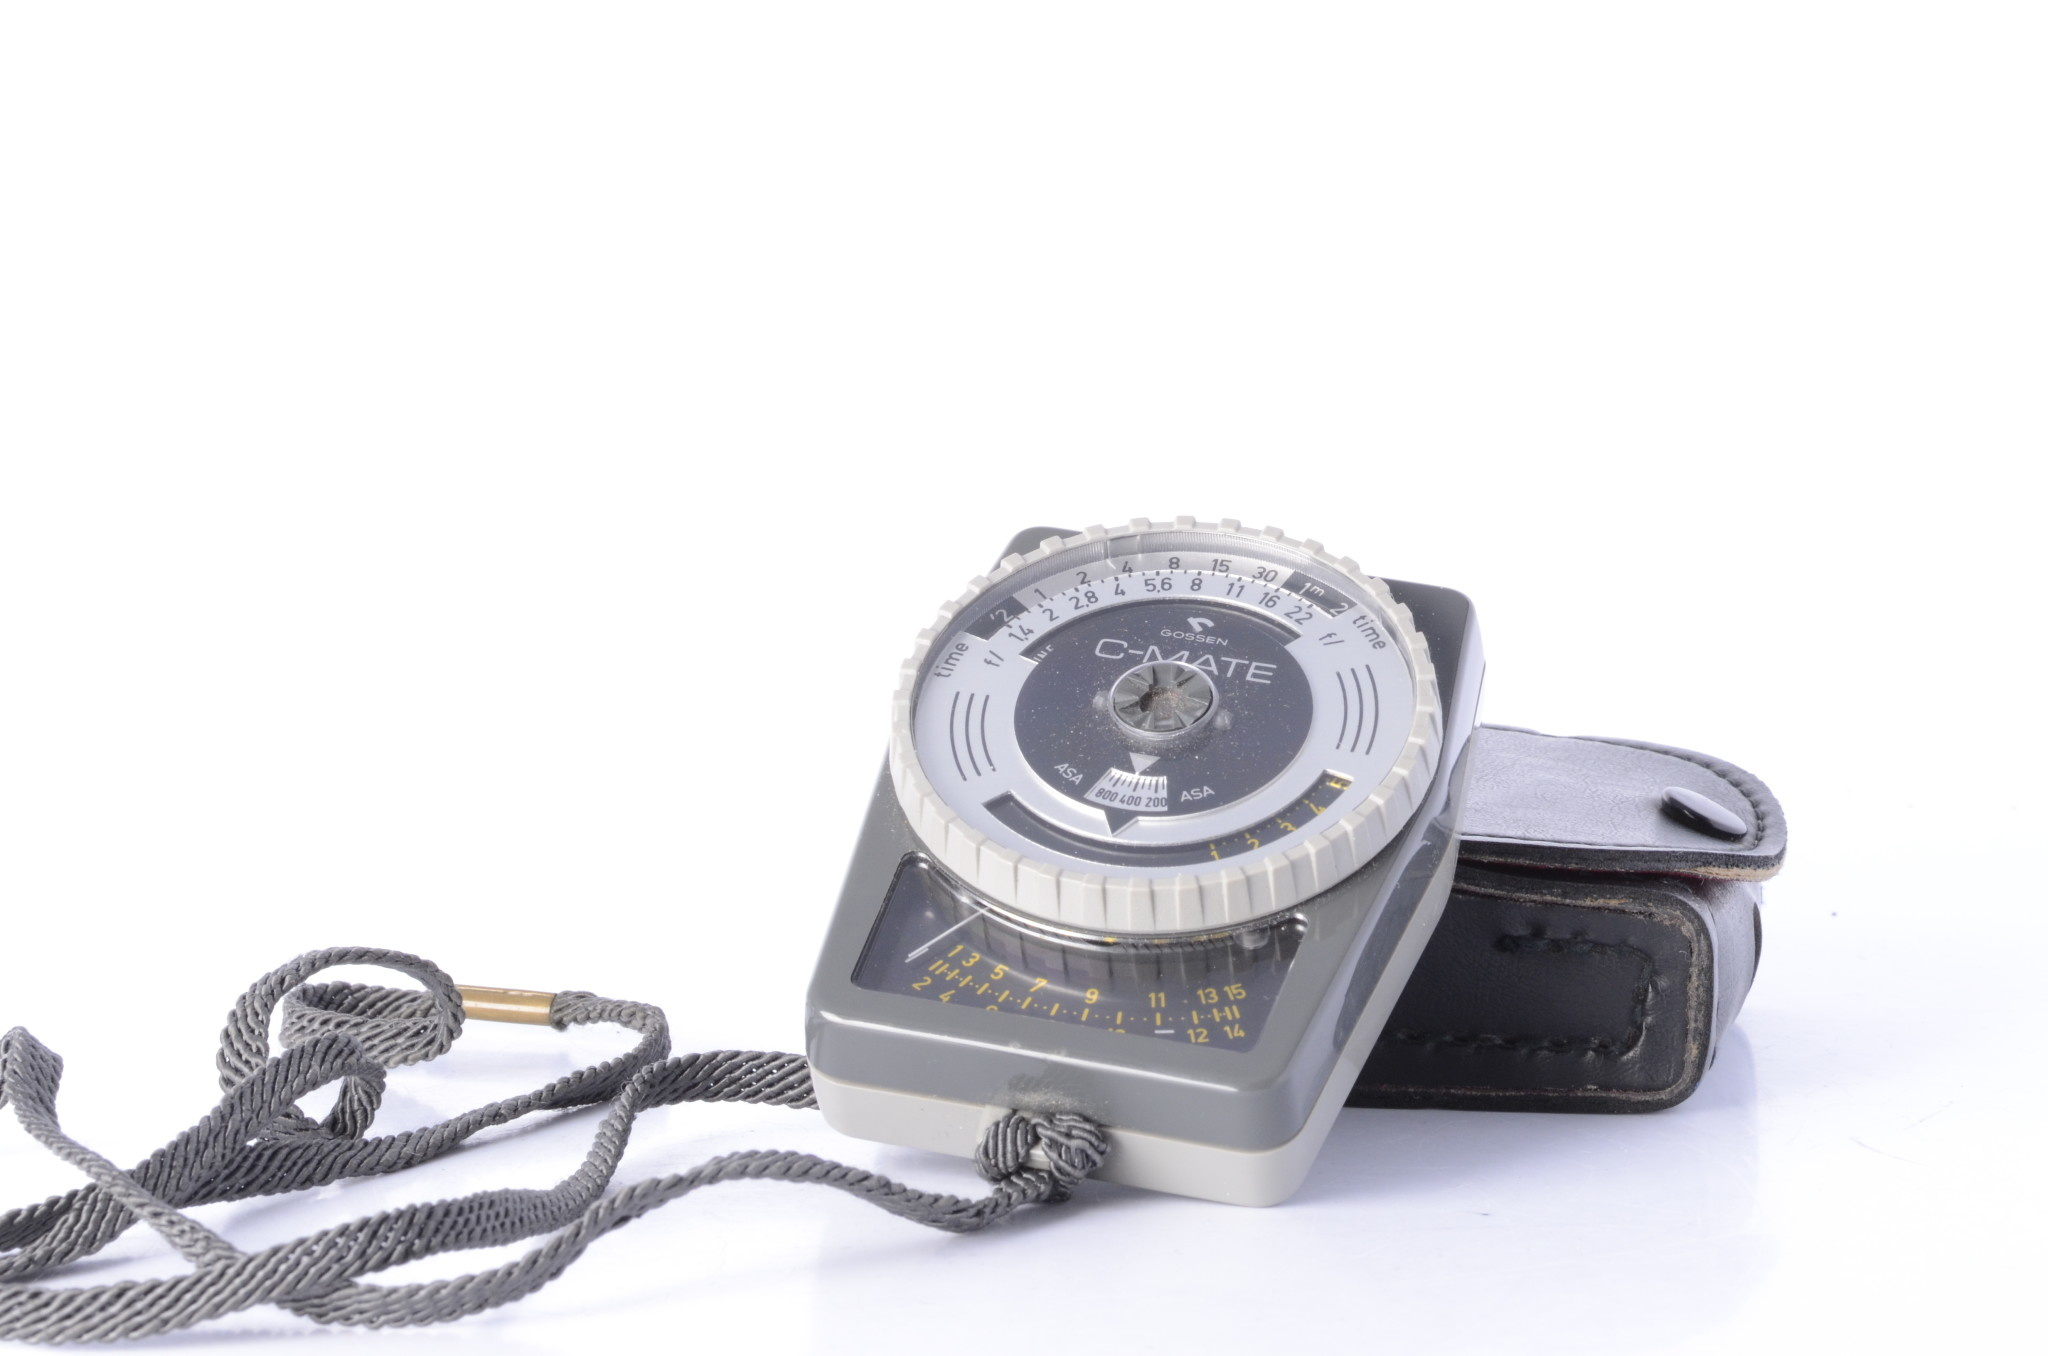 Gossen Gossen C-Mate Light Meter